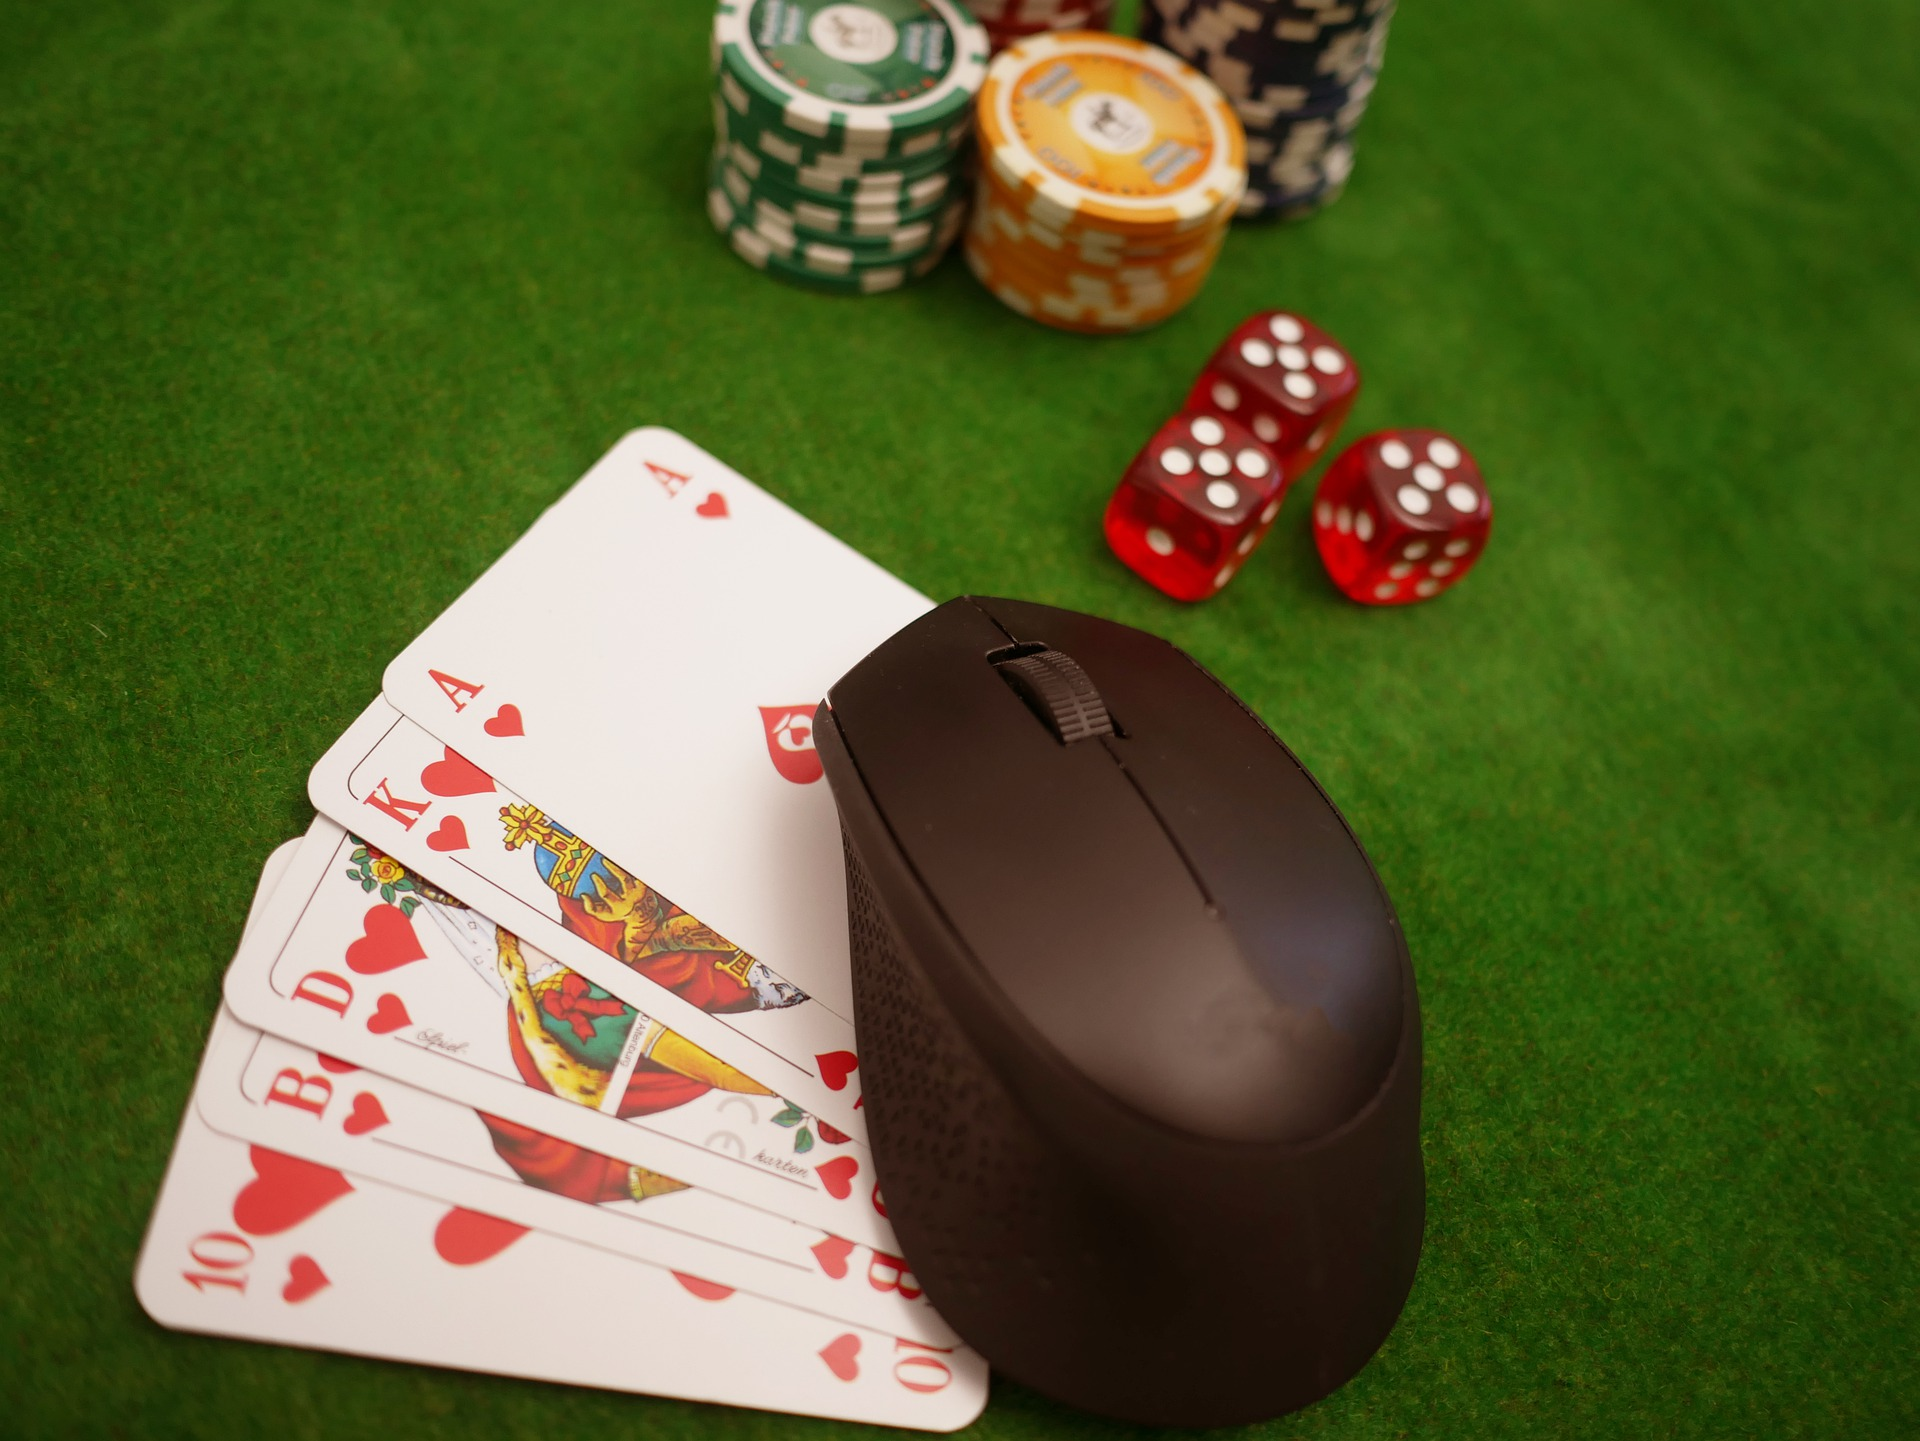 Free Play Casino Promotional Codes